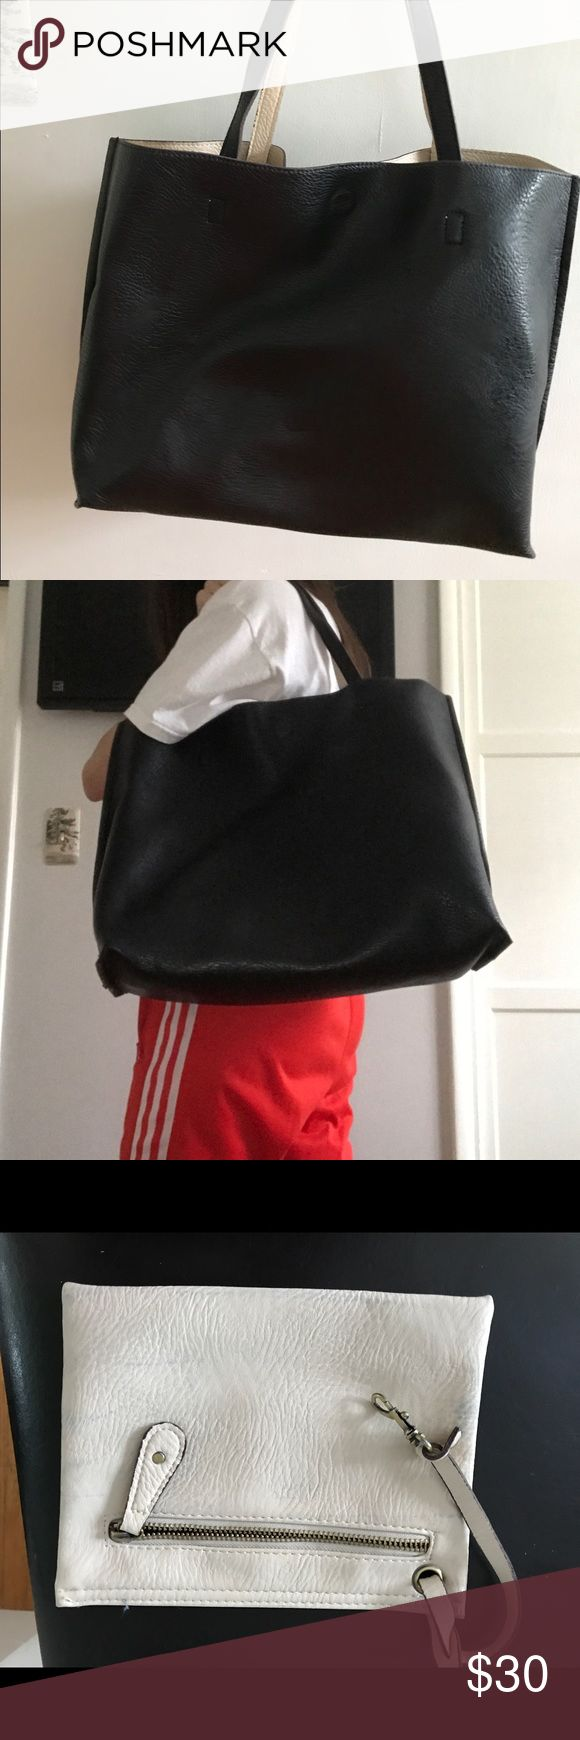 Large black tote bag Black leather large tote. Inside is white/cream and the bag is reversible comes with a small coin pouch that hangs inside bag Free People Bags Totes